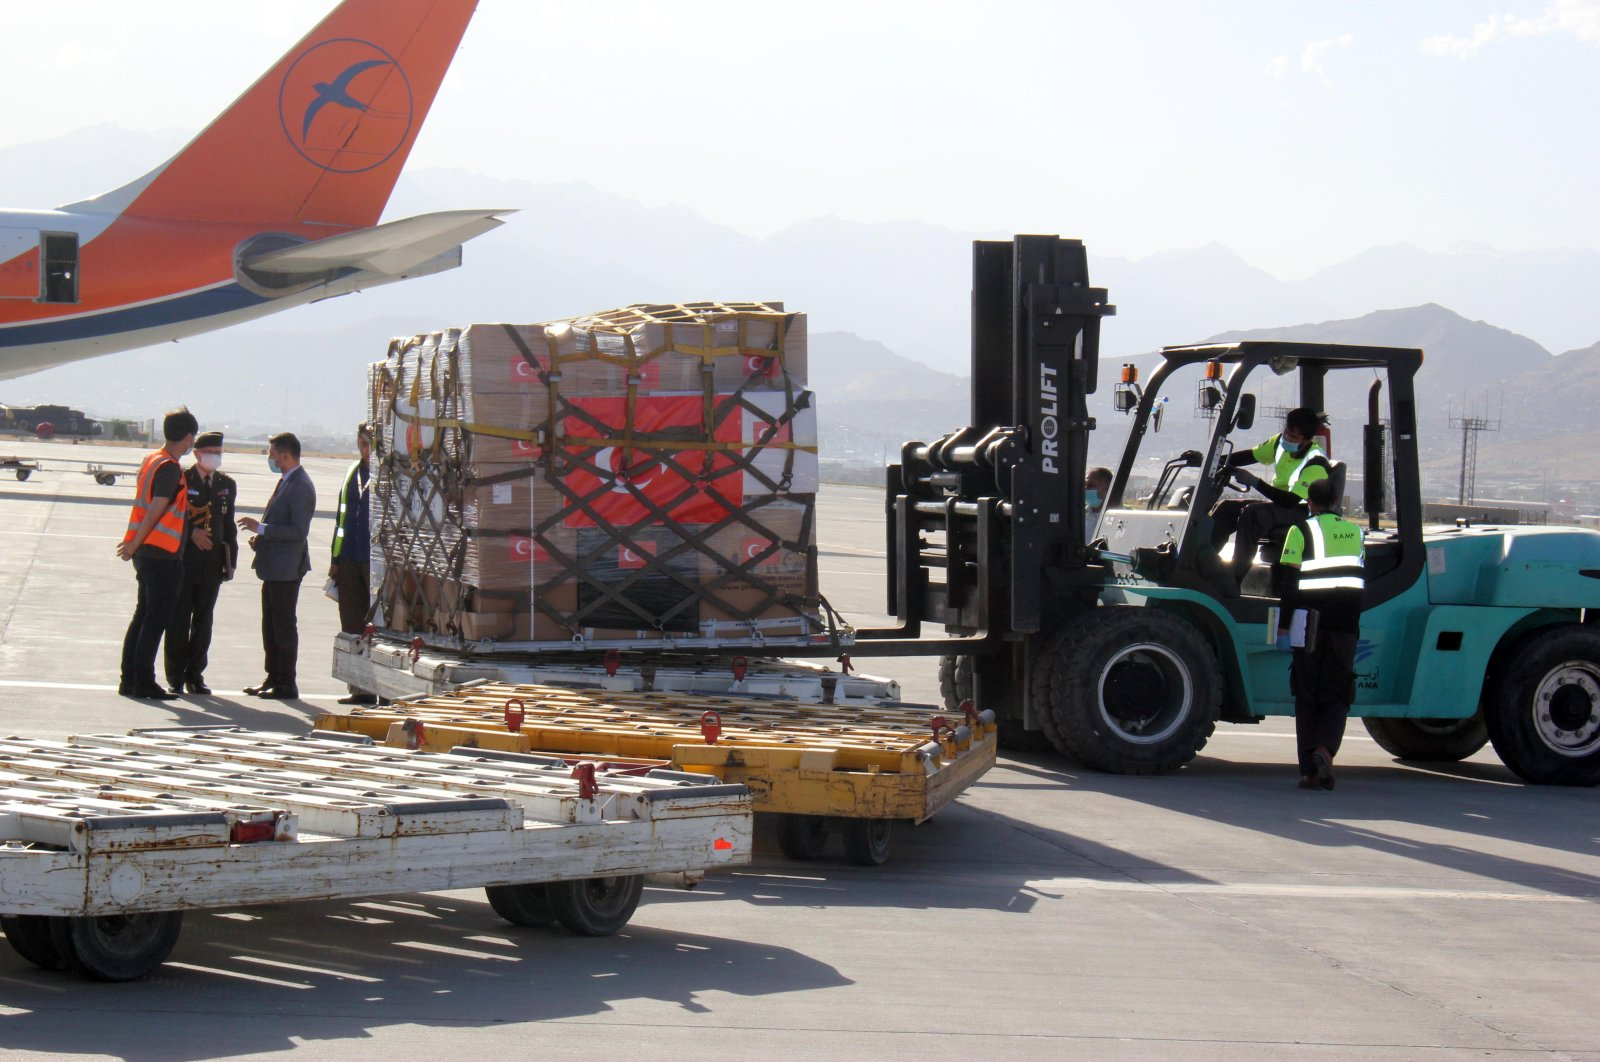 So far, Turkey has helped almost 130 countries with humanitarian aid during the outbreak, including the U.S., U.K., Italy and Spain, making it the world's third-largest provider of aid during the pandemic.